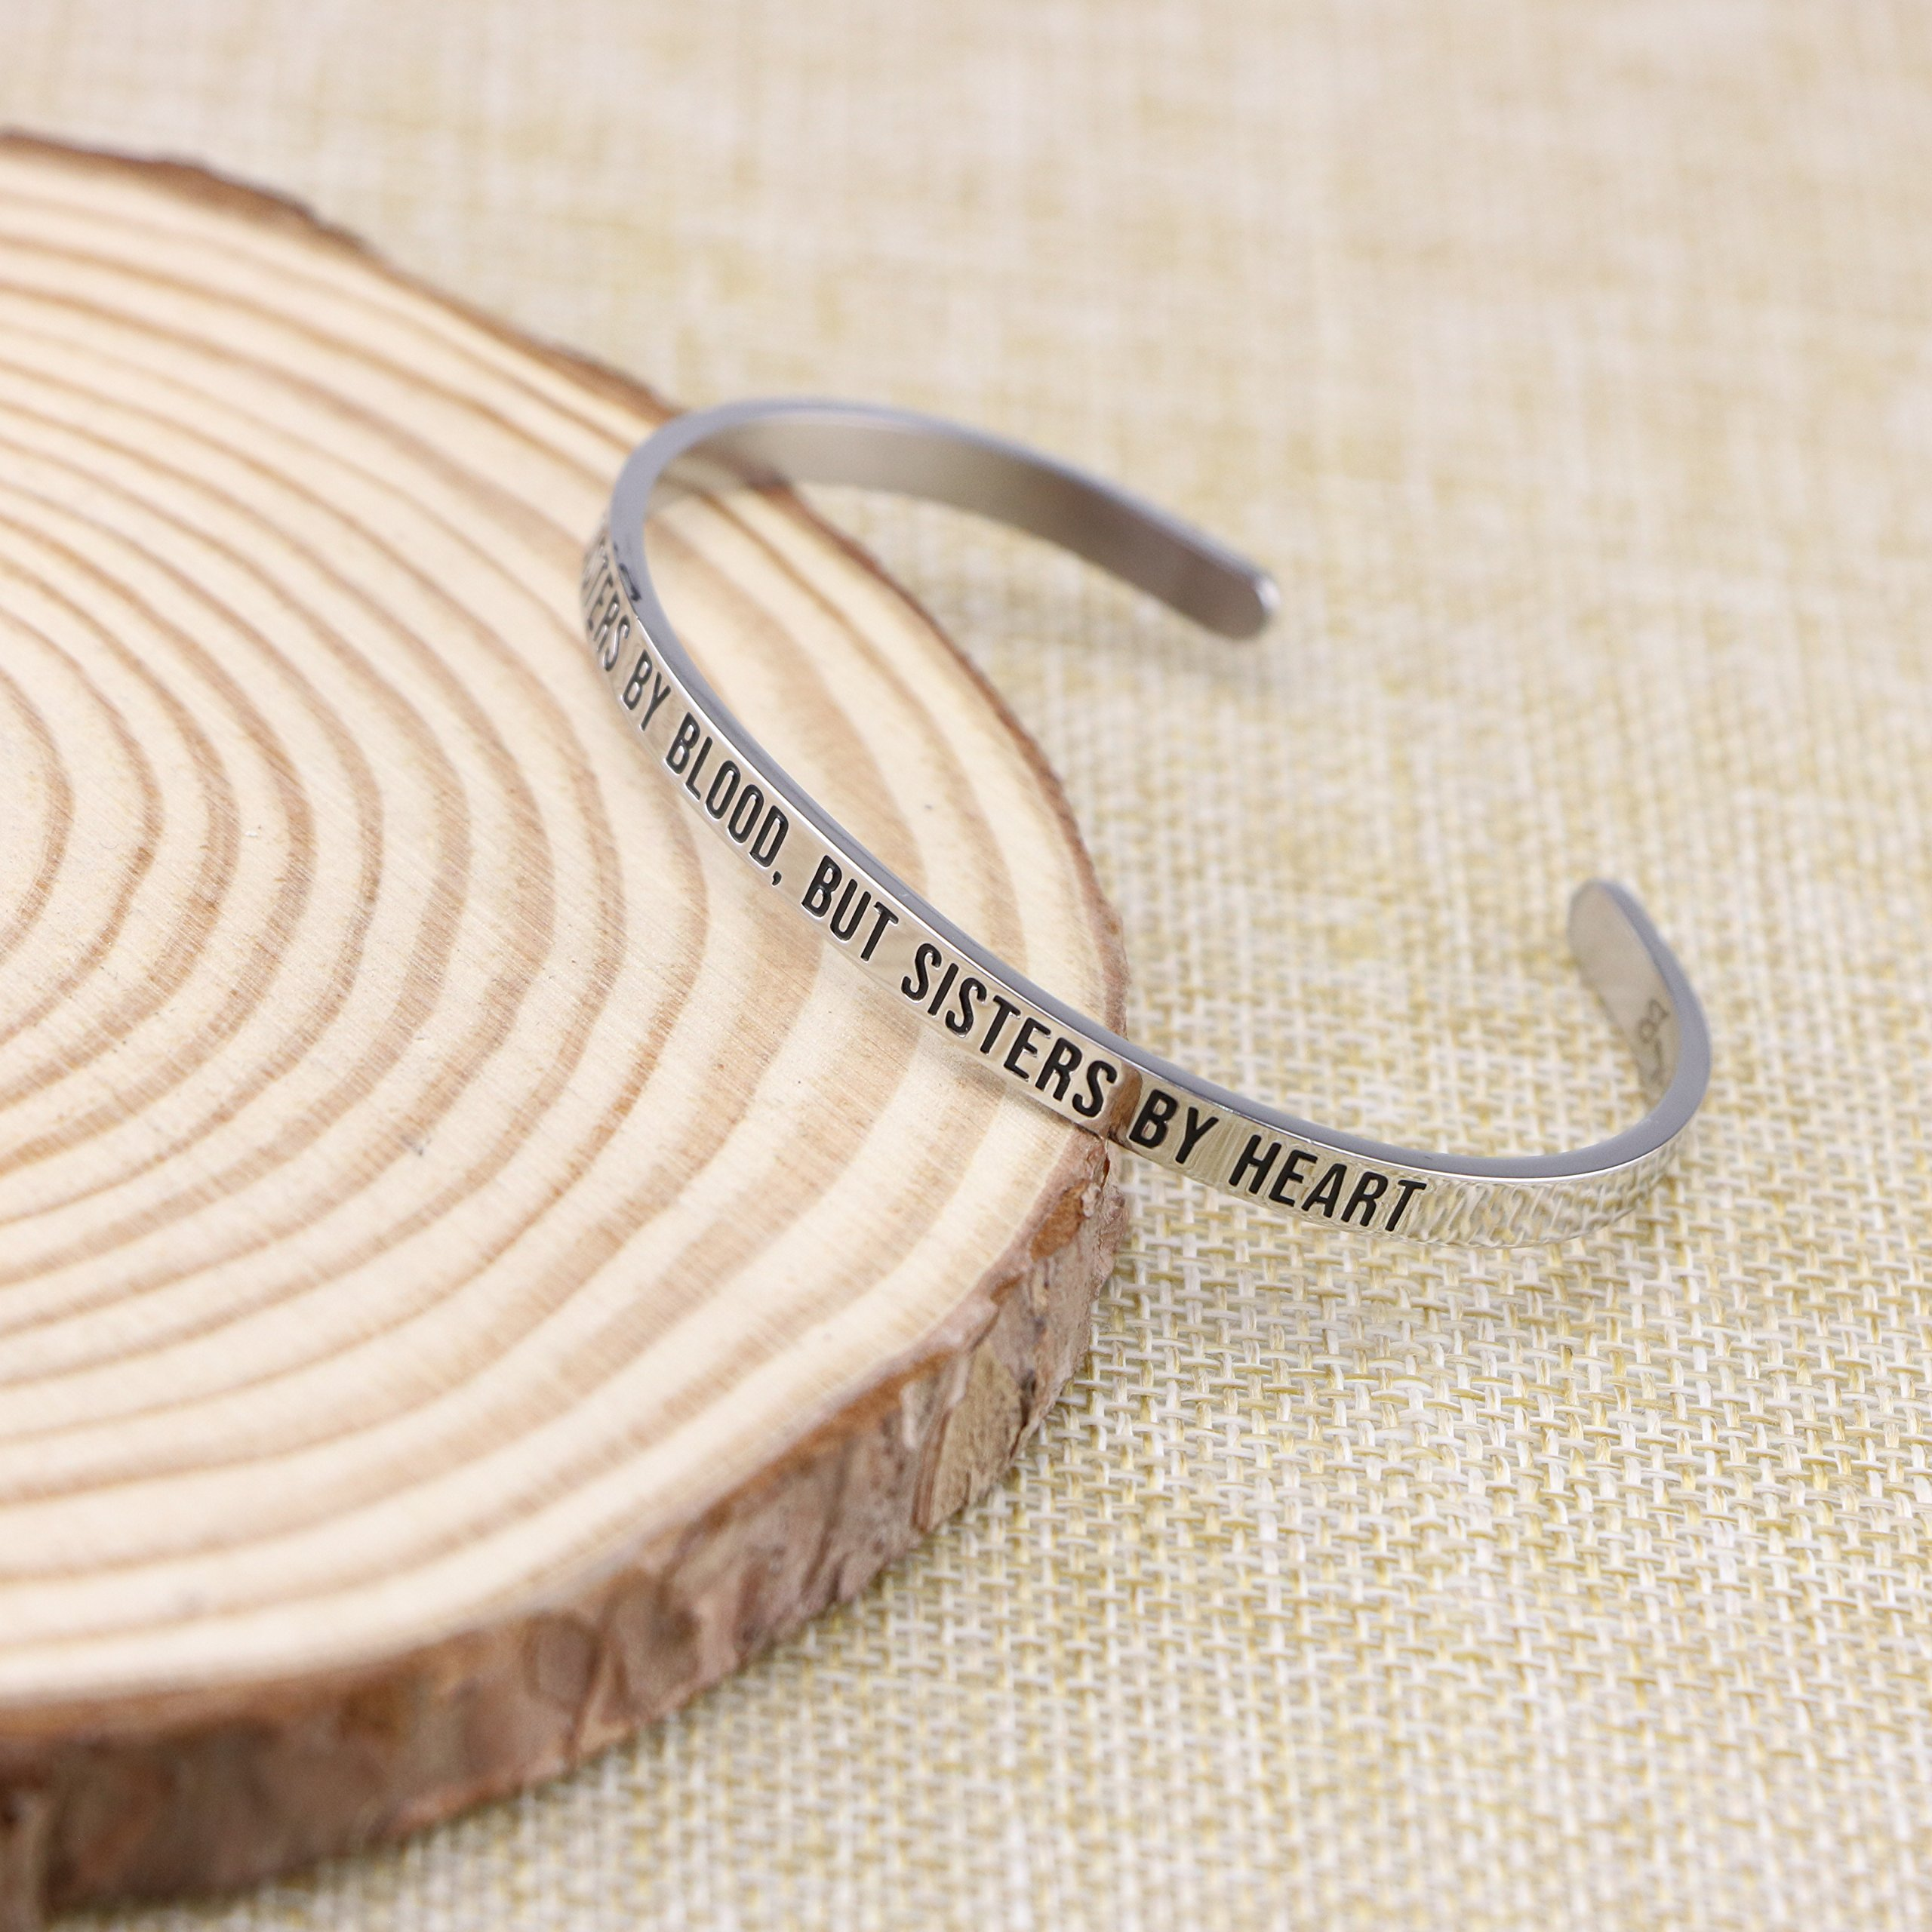 Joycuff Best Friend Bracelet Cuff Engravable Mantra Bangle BFF Jewelry Gifts for Her Not sisters by blood, but sisters by heart by Joycuff (Image #3)